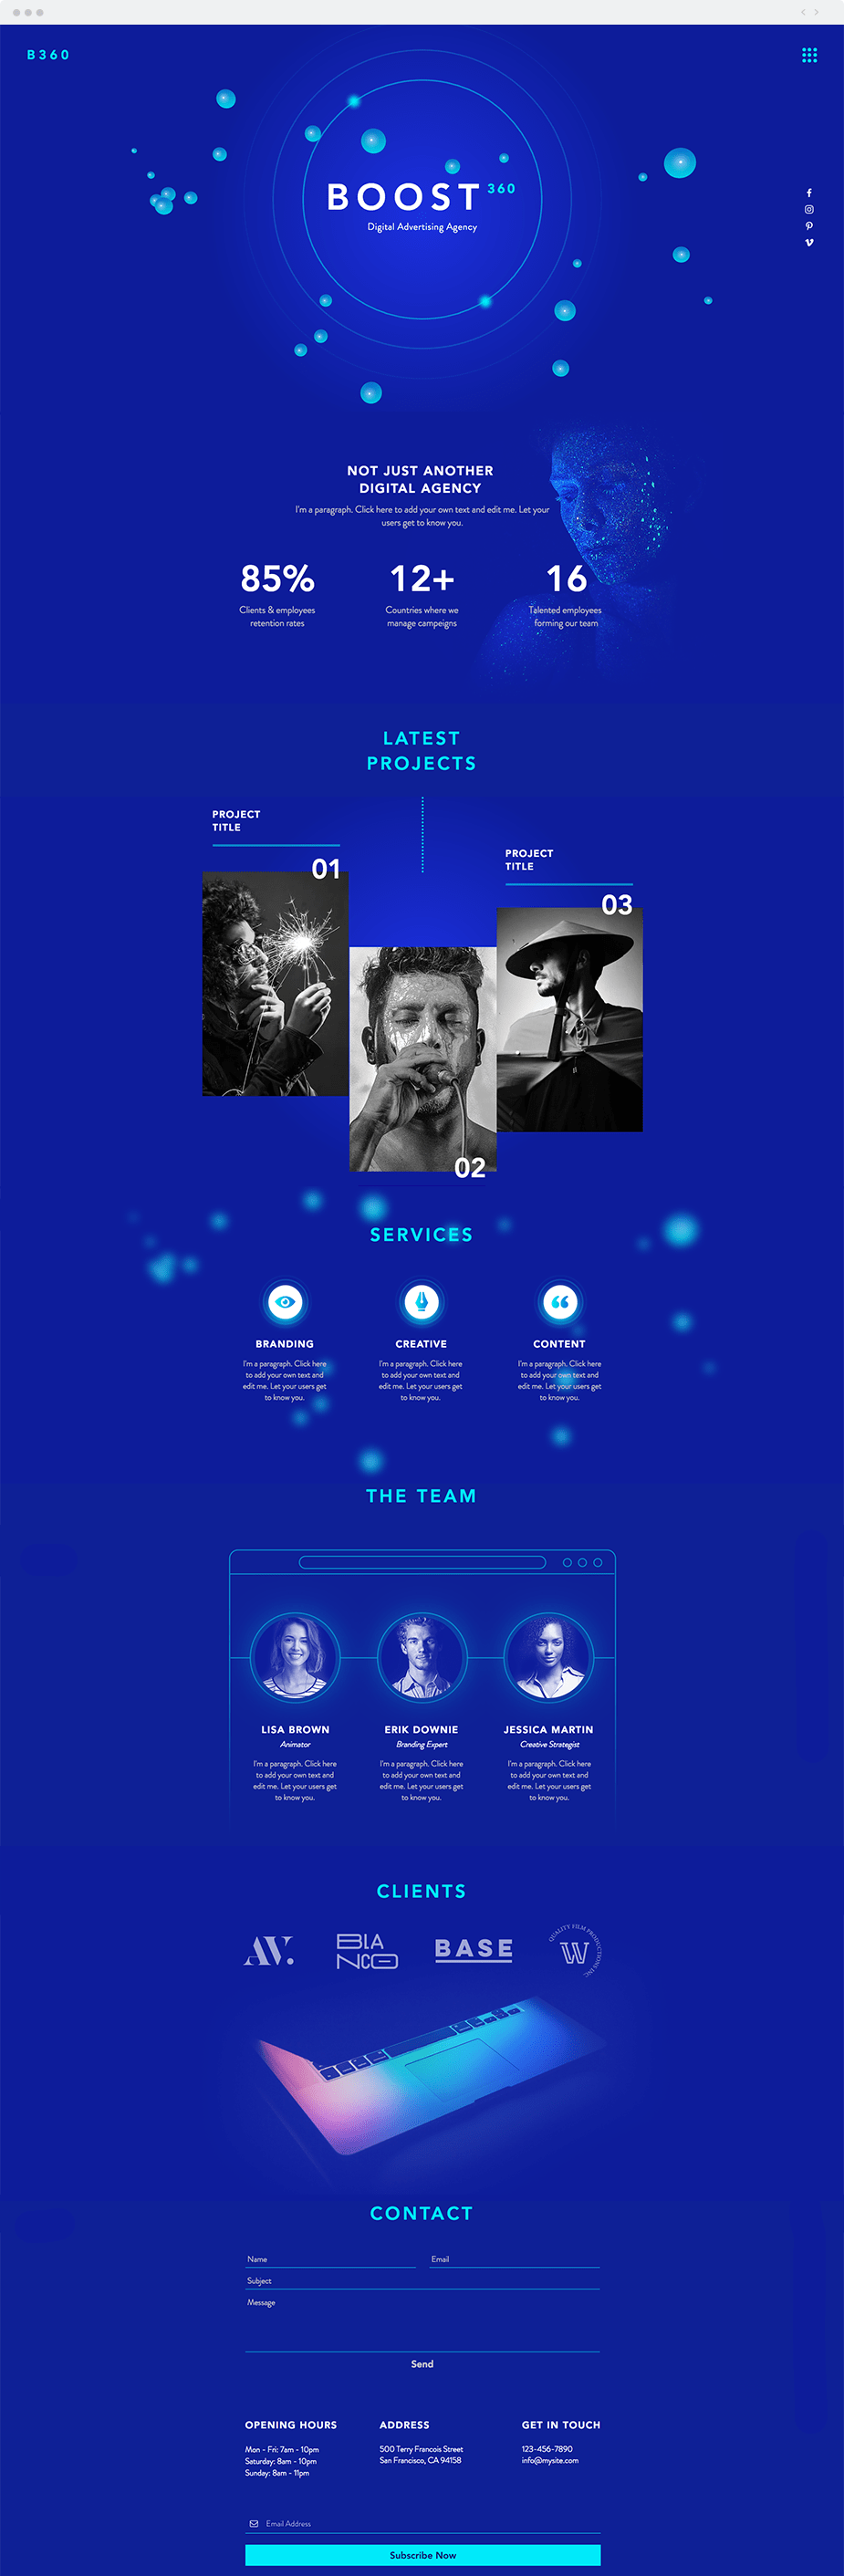 Web design trends of 2018 - Break the (layout) rules